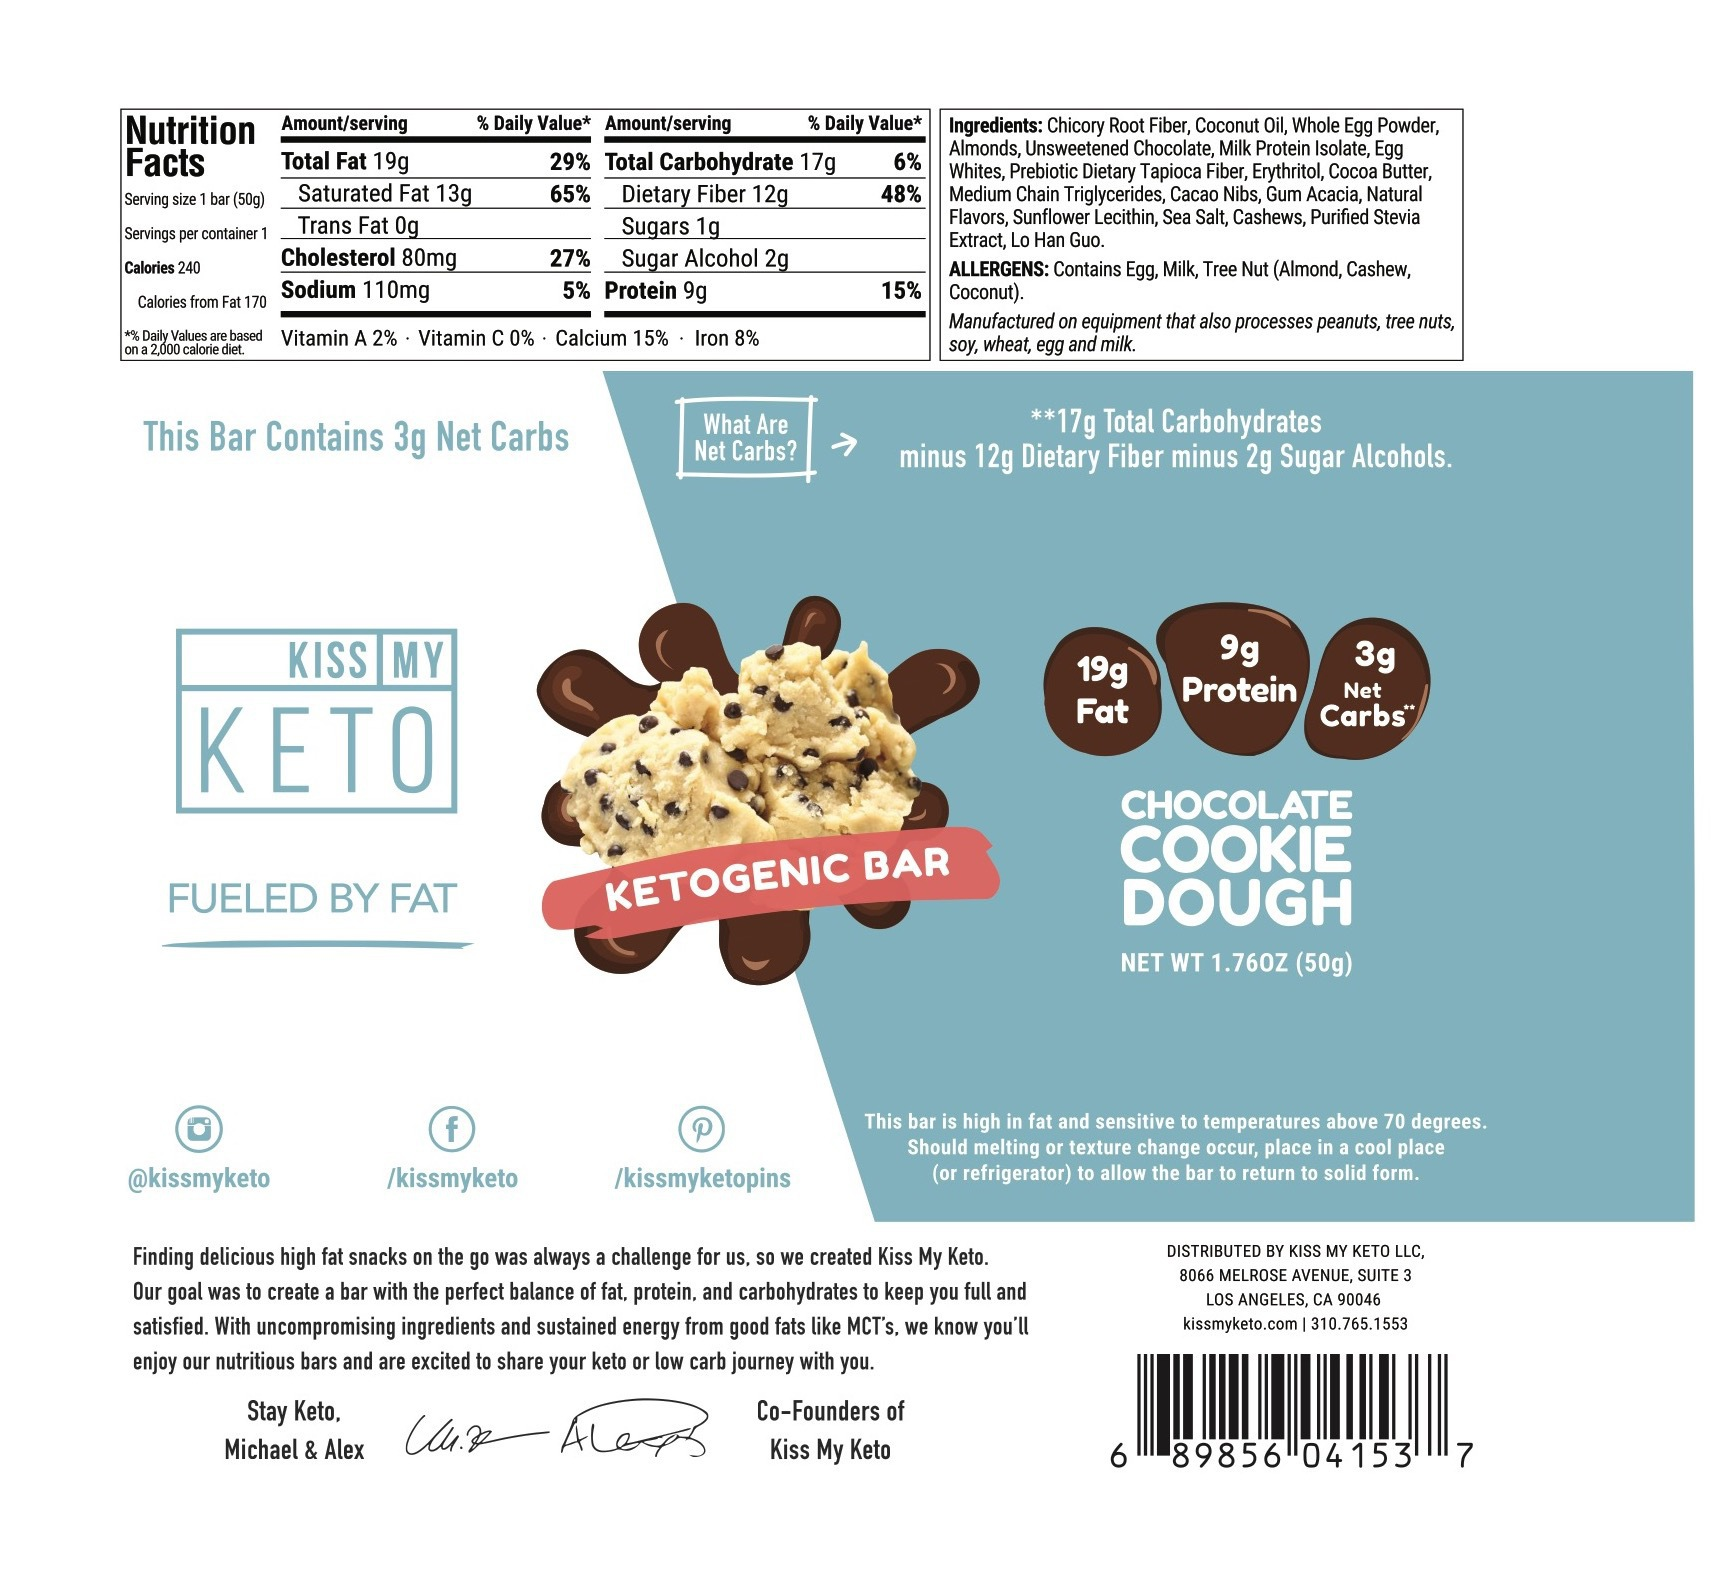 CHOCOLATE COOKIE DOUGH KETOGENIC BAR | The Natural Products